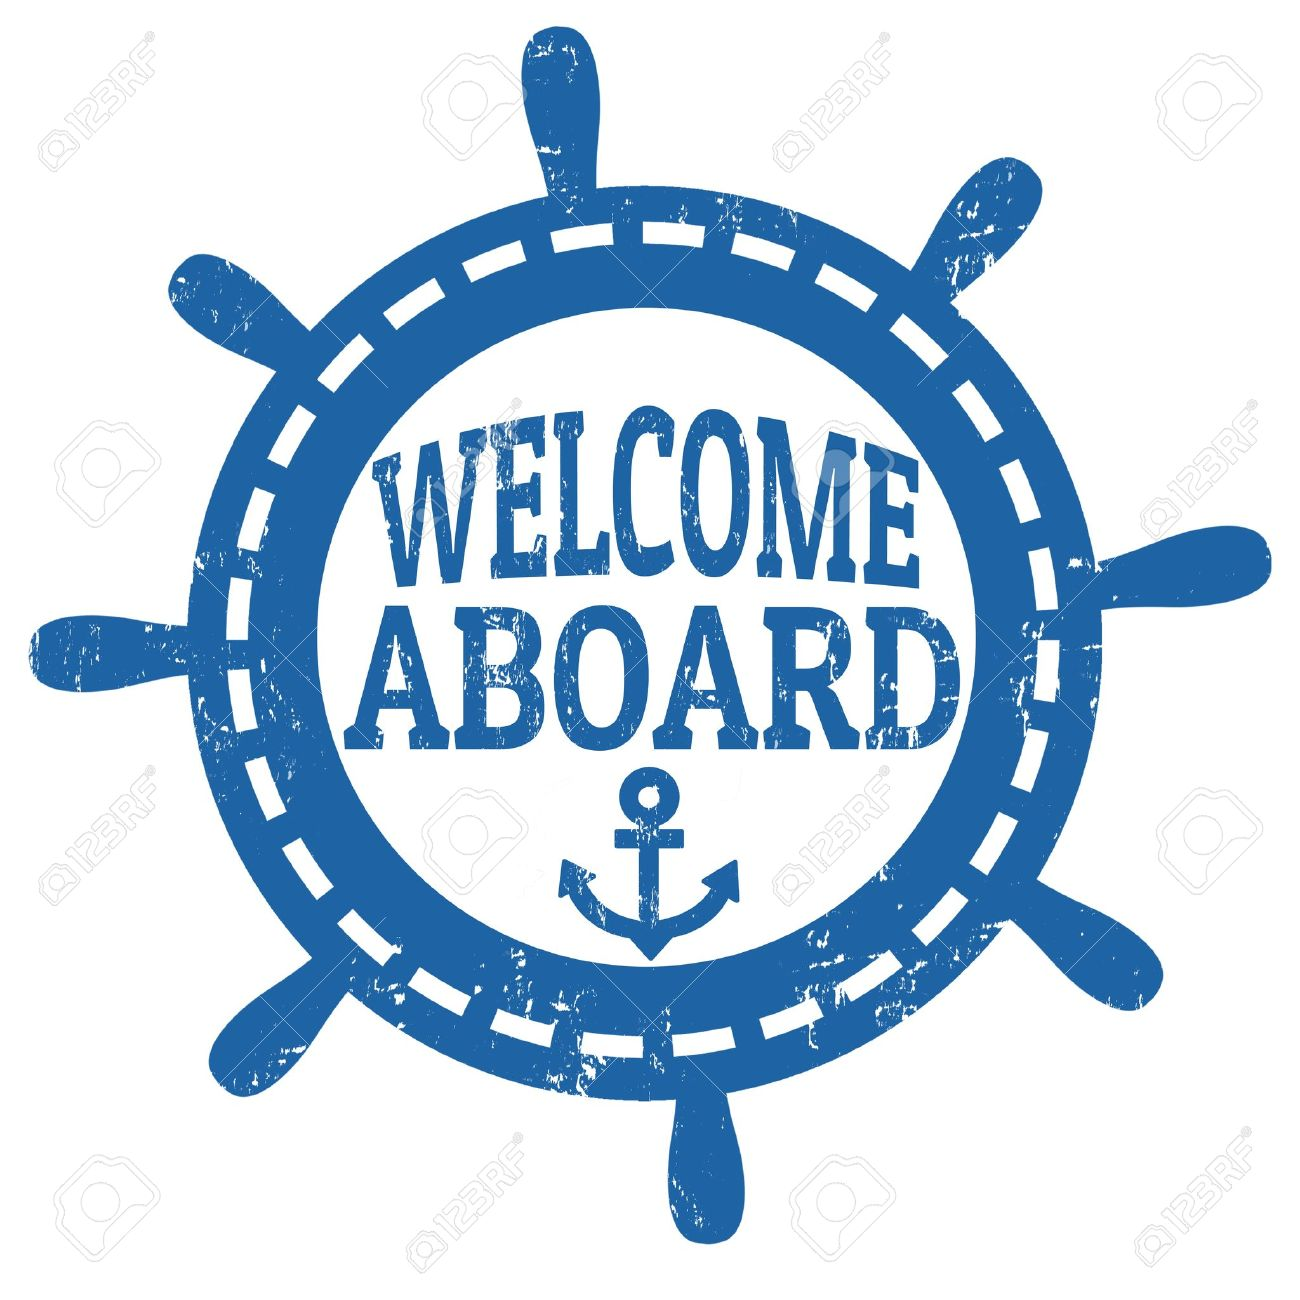 Welcome Aboard Clipart.